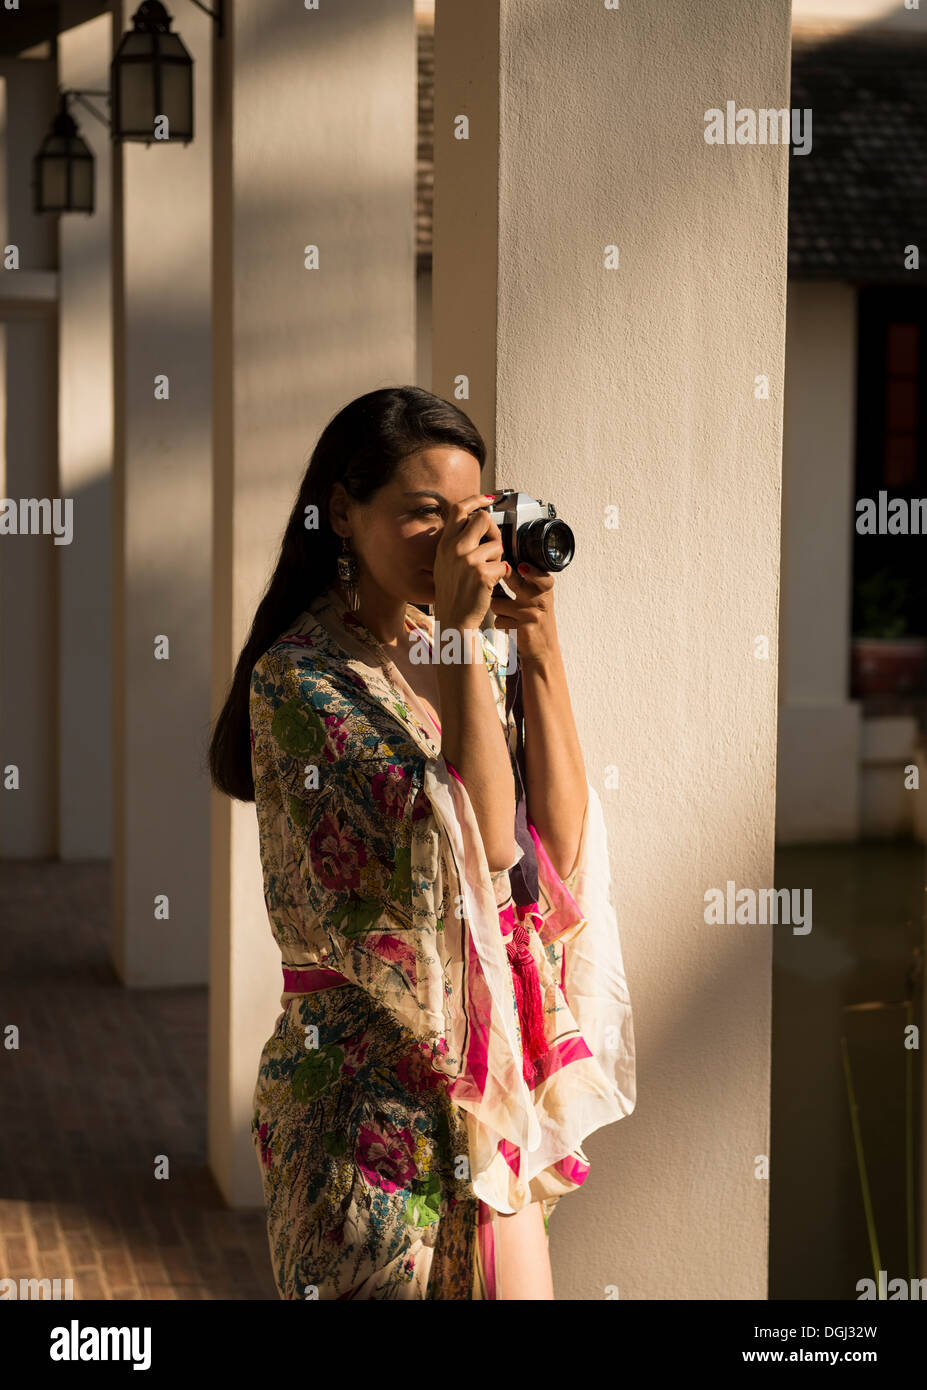 Woman taking photograph by columns in hotel - Stock Image